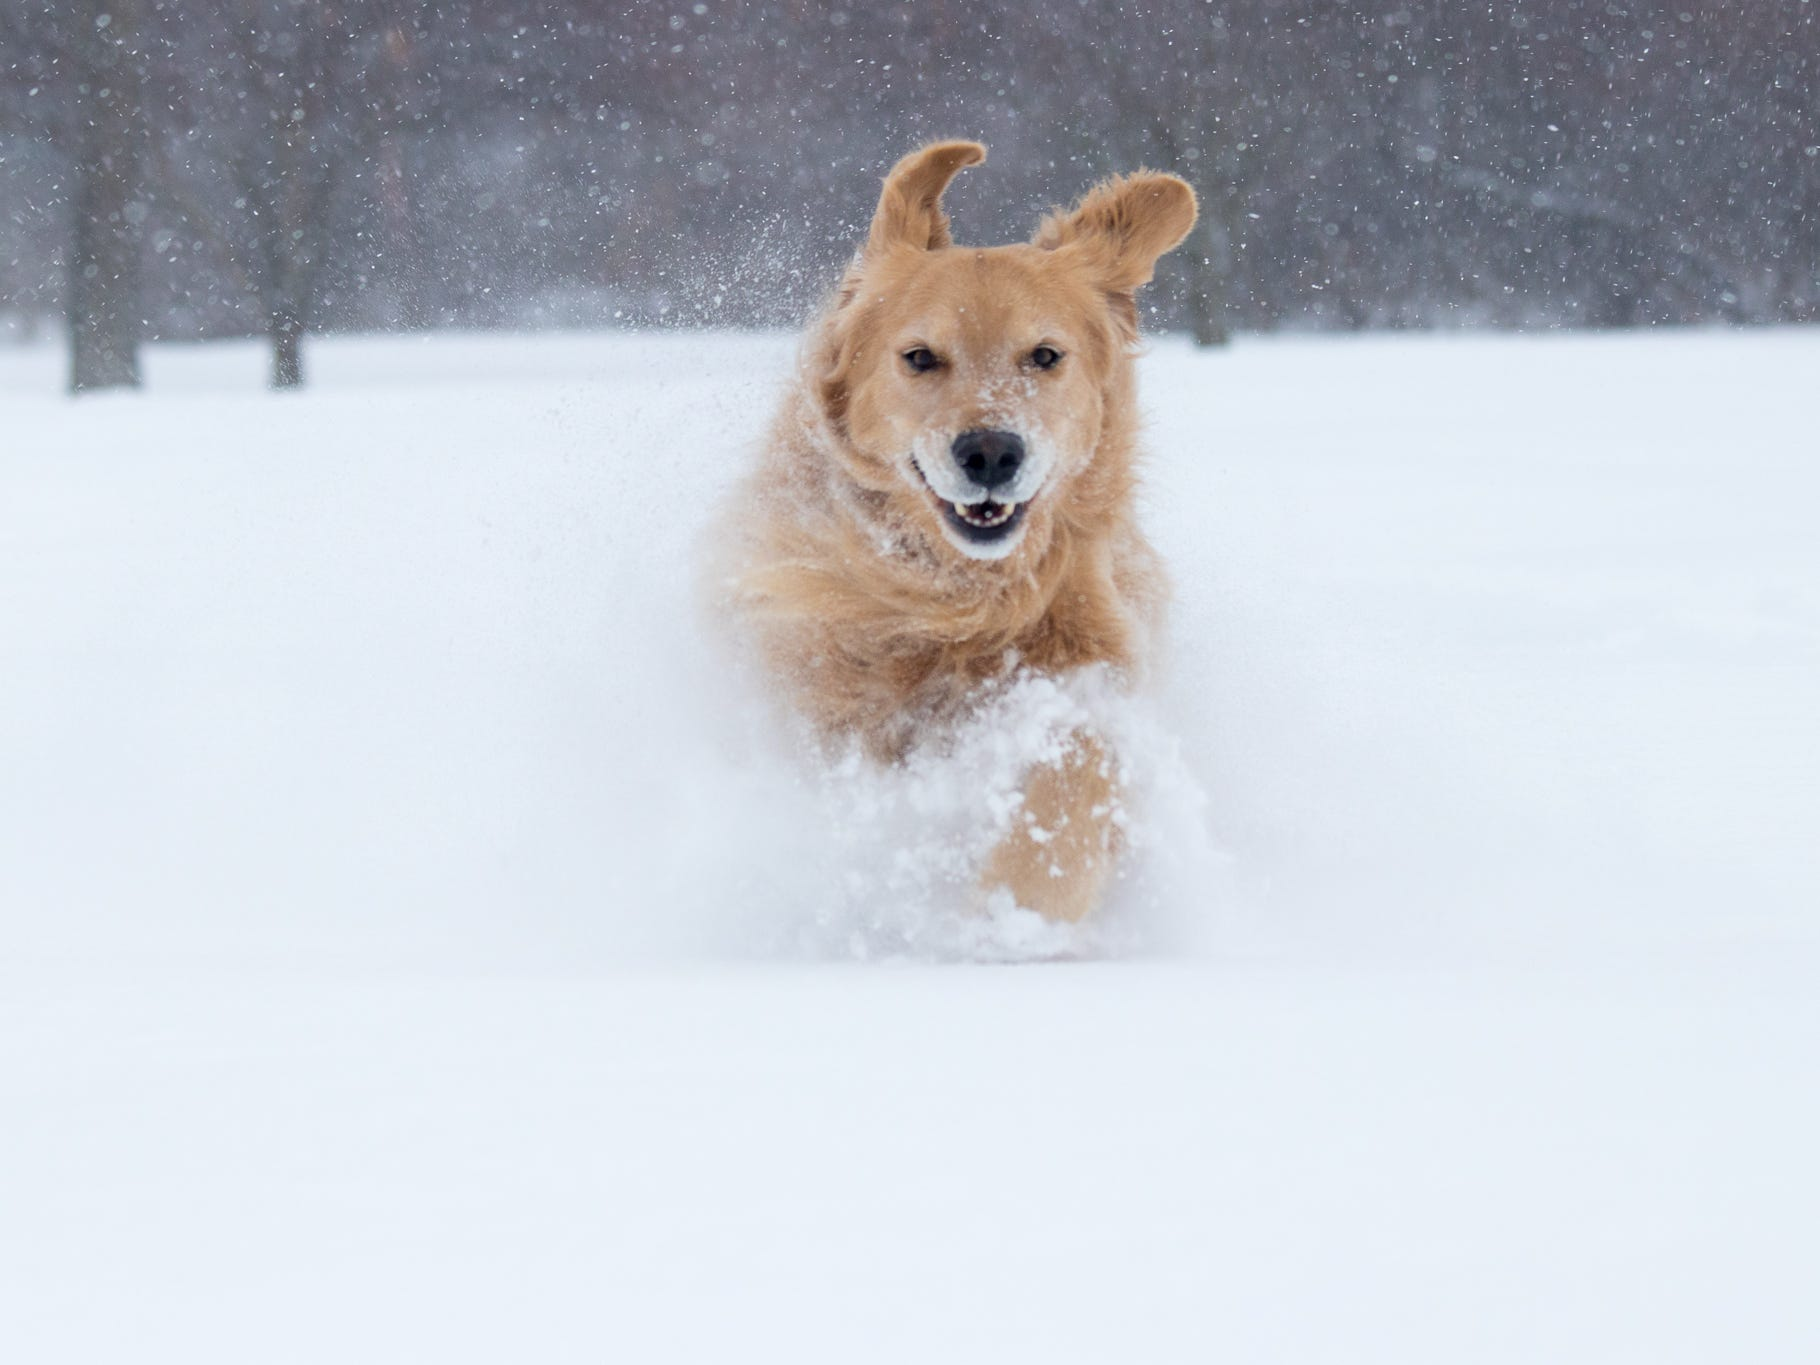 Griffey the golden retriever dashes through the snow in Hilton on Jan. 20, 2019.